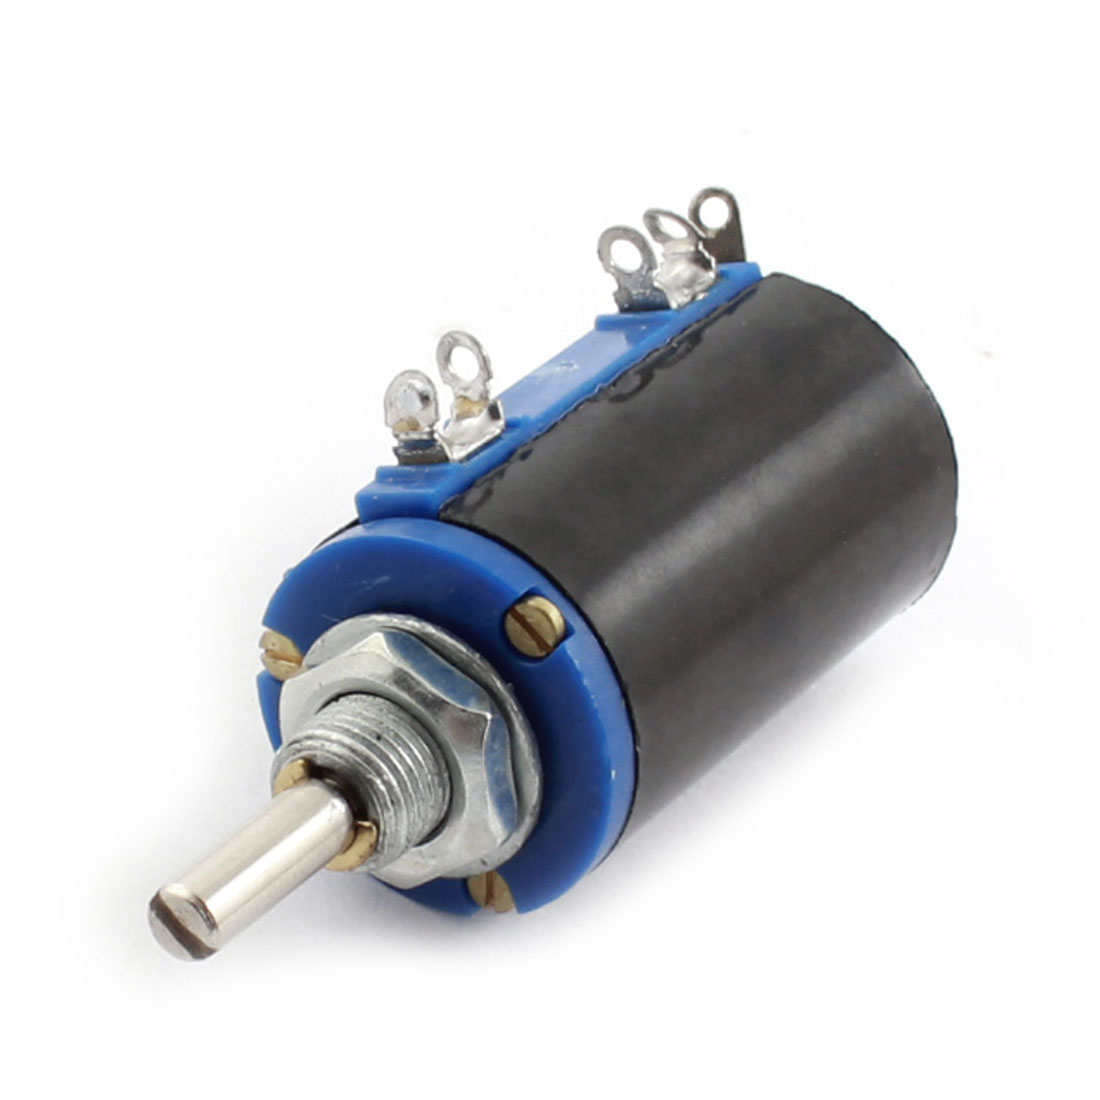 WXD3-13 2W 22K Ohm 5% Tolerance 3 Solder Lug 4mm Dia Drive Shaft Wire Wound Rotary Potentiometer